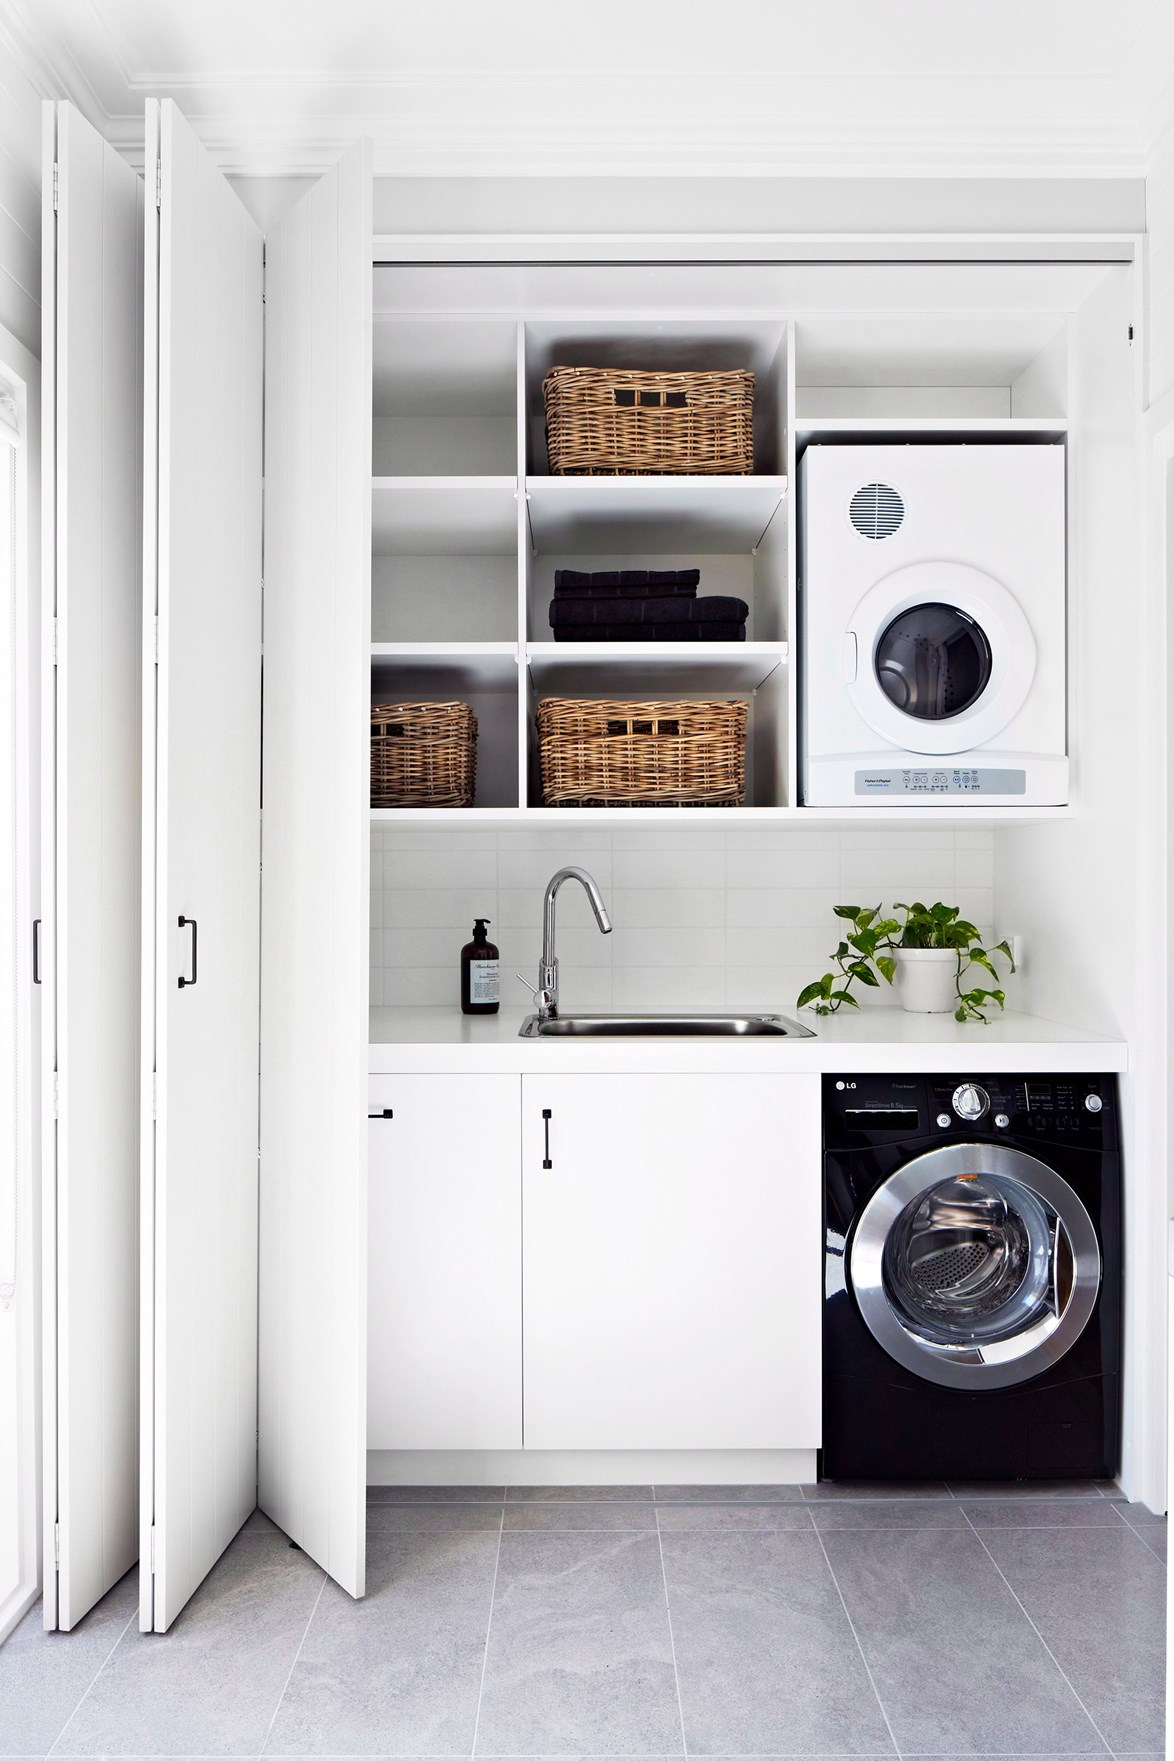 **Opt for a hidden laundry.** Integrated cabinetry or a sliding door make great laundry options for compact spaces. Both are on-trend solutions that will conceal the machines and leave your home looking clean and tidy. If space is very limited, try stacking the machines on top of each other for a streamlined solution.